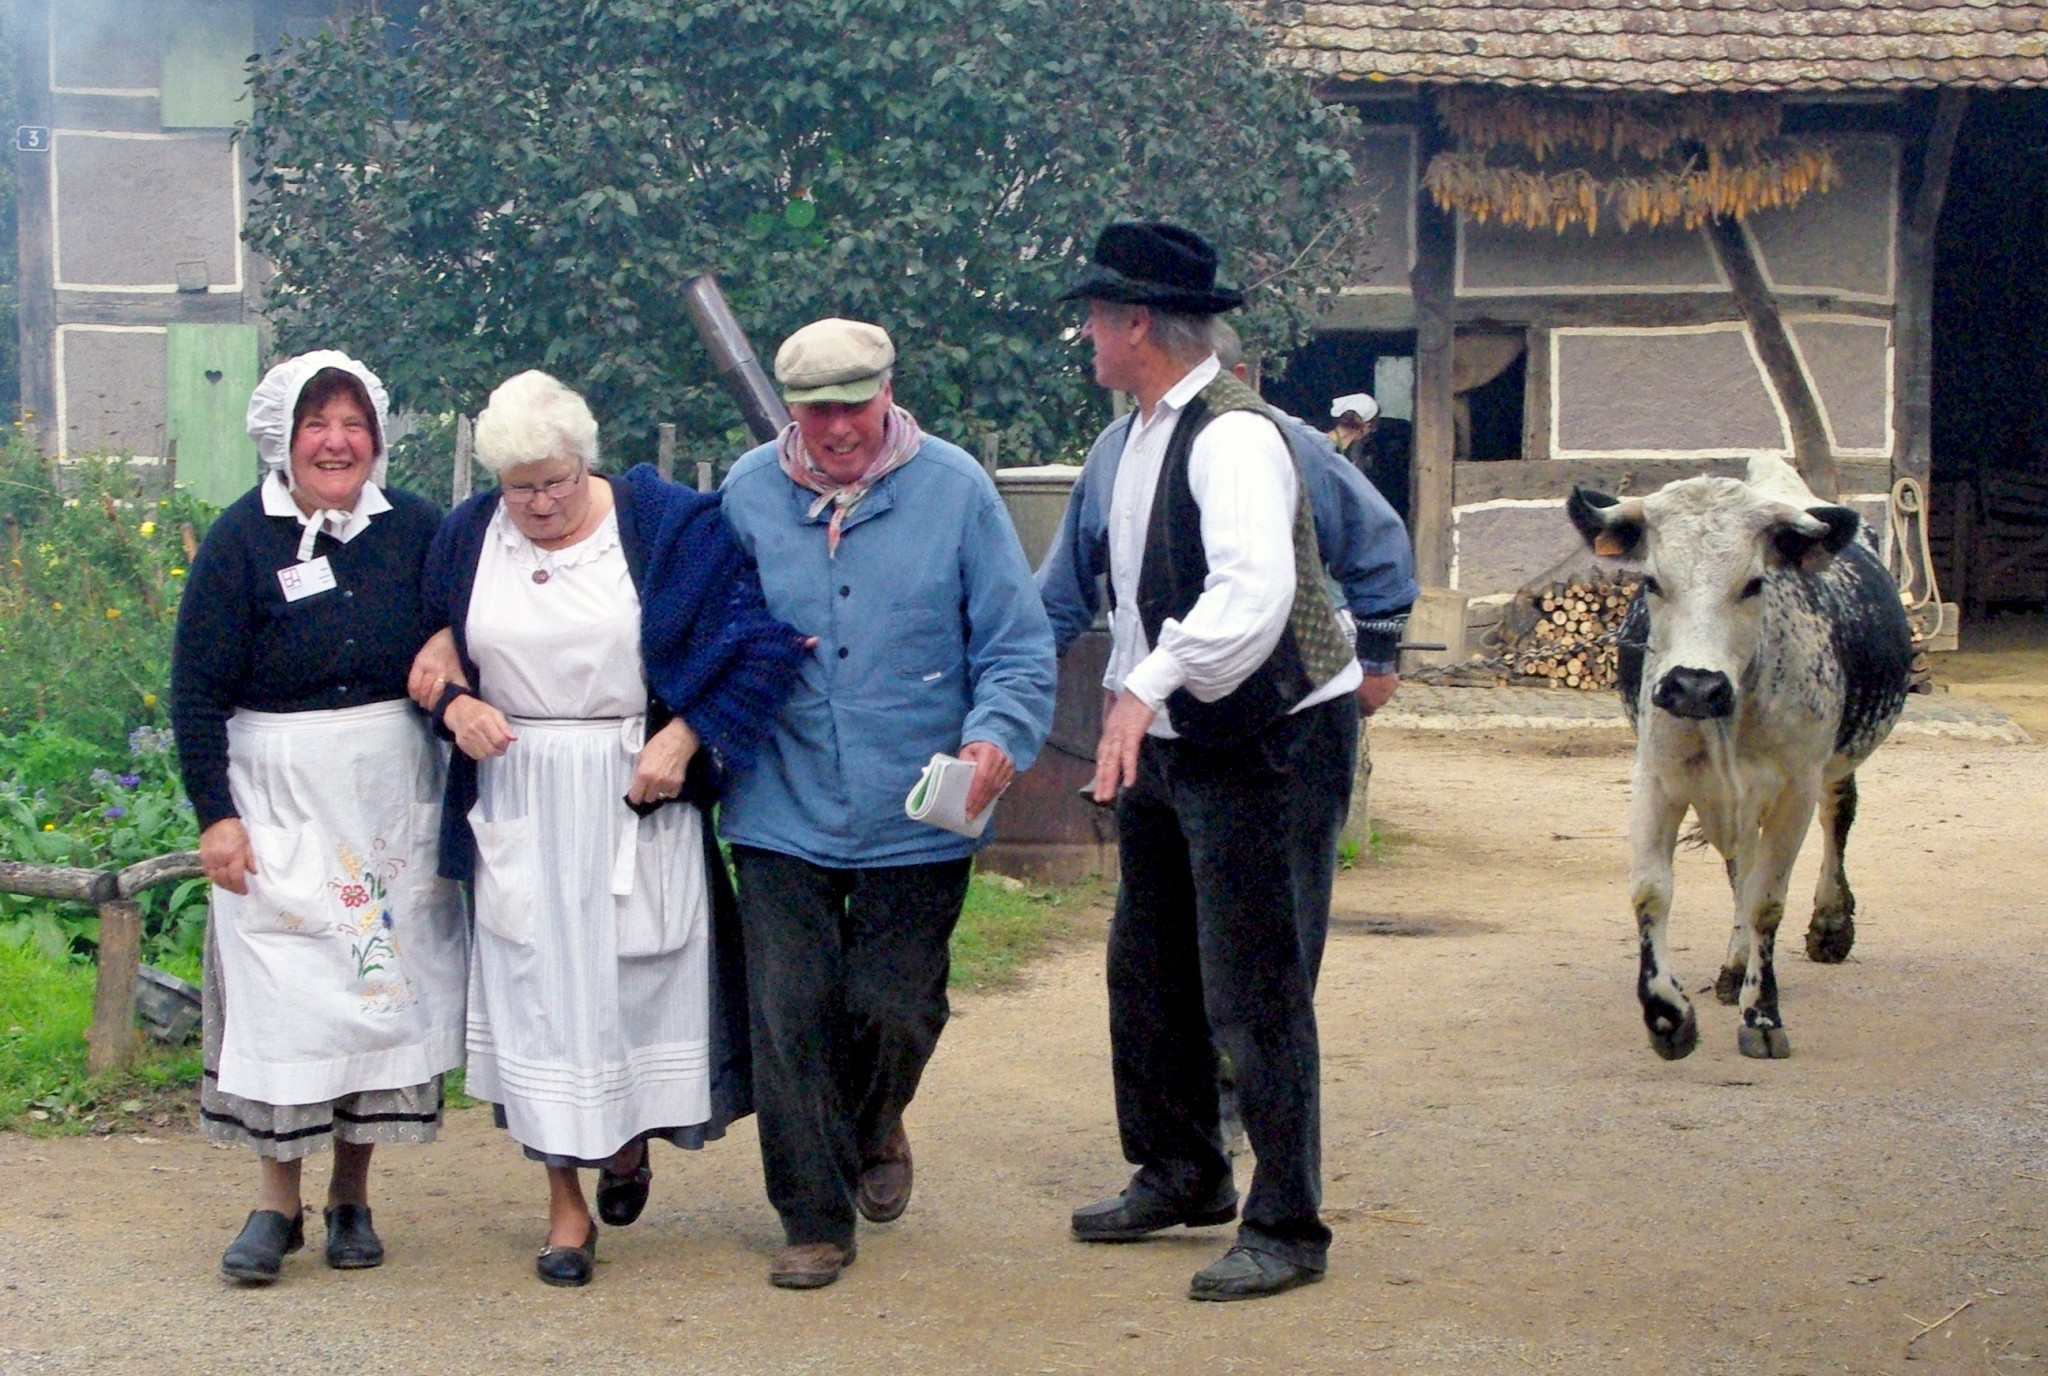 Costumed people at the Ecomusée d'Alsace © French Moments